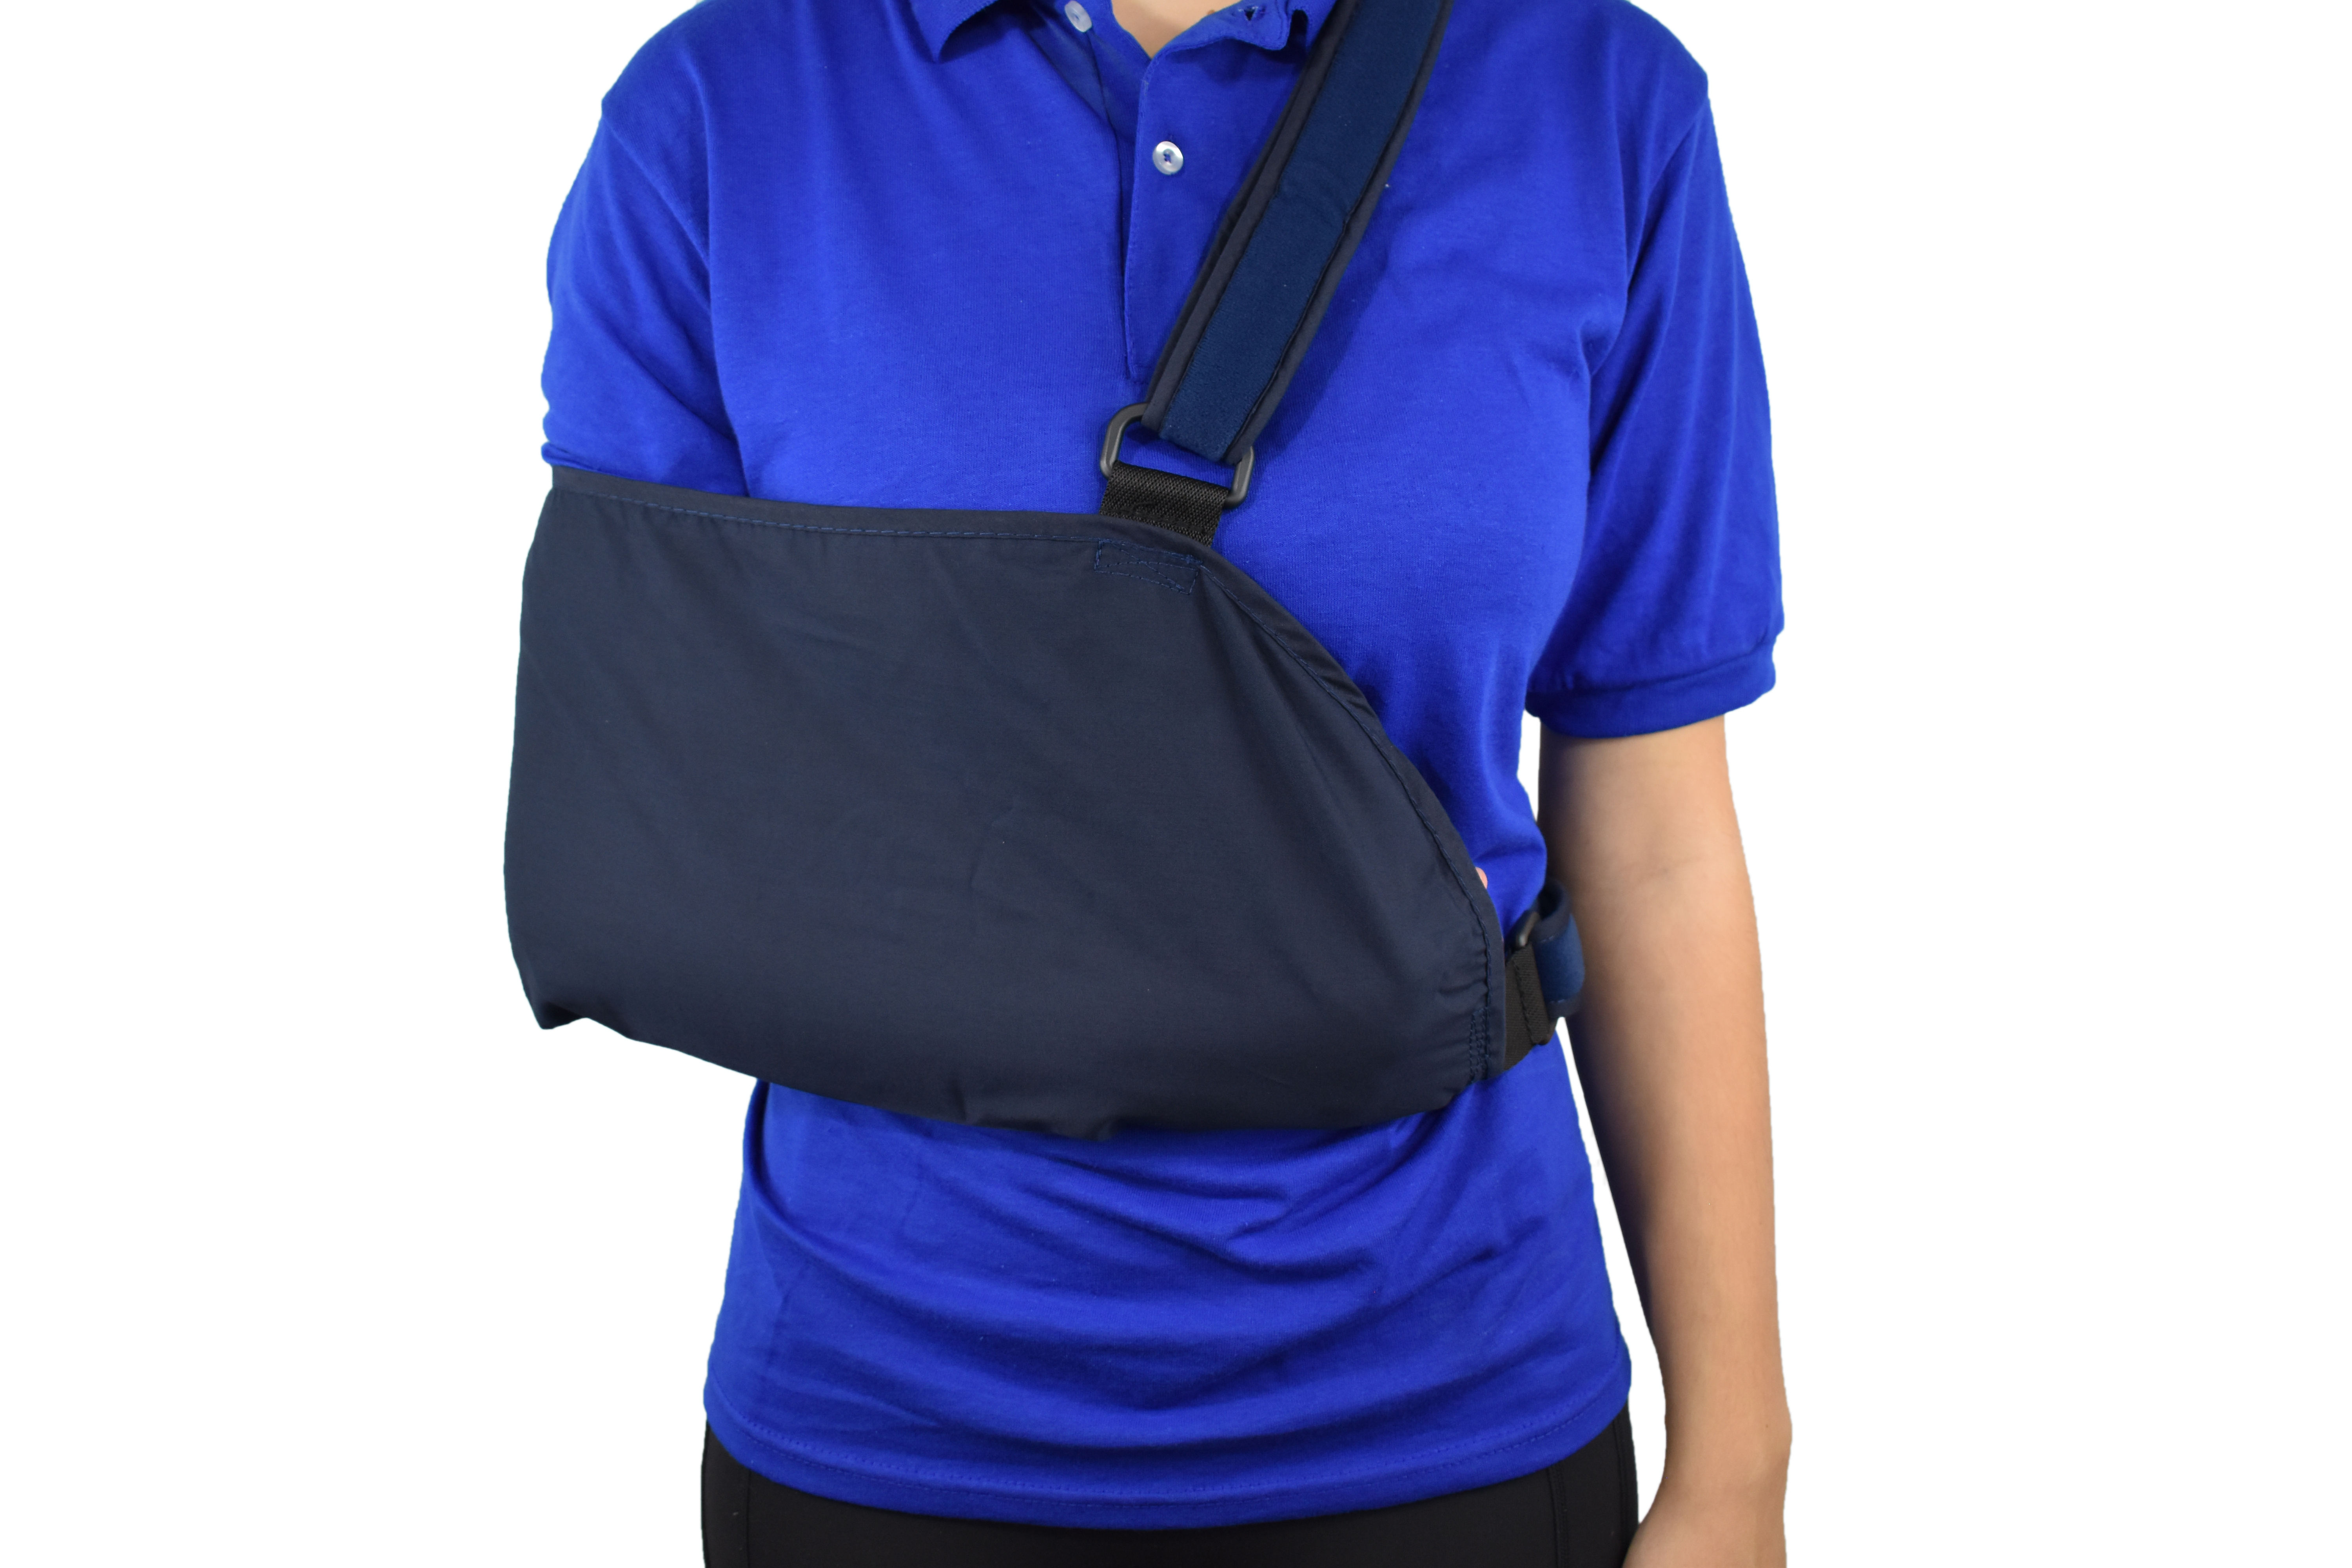 Standard Shoulder Immobilizer